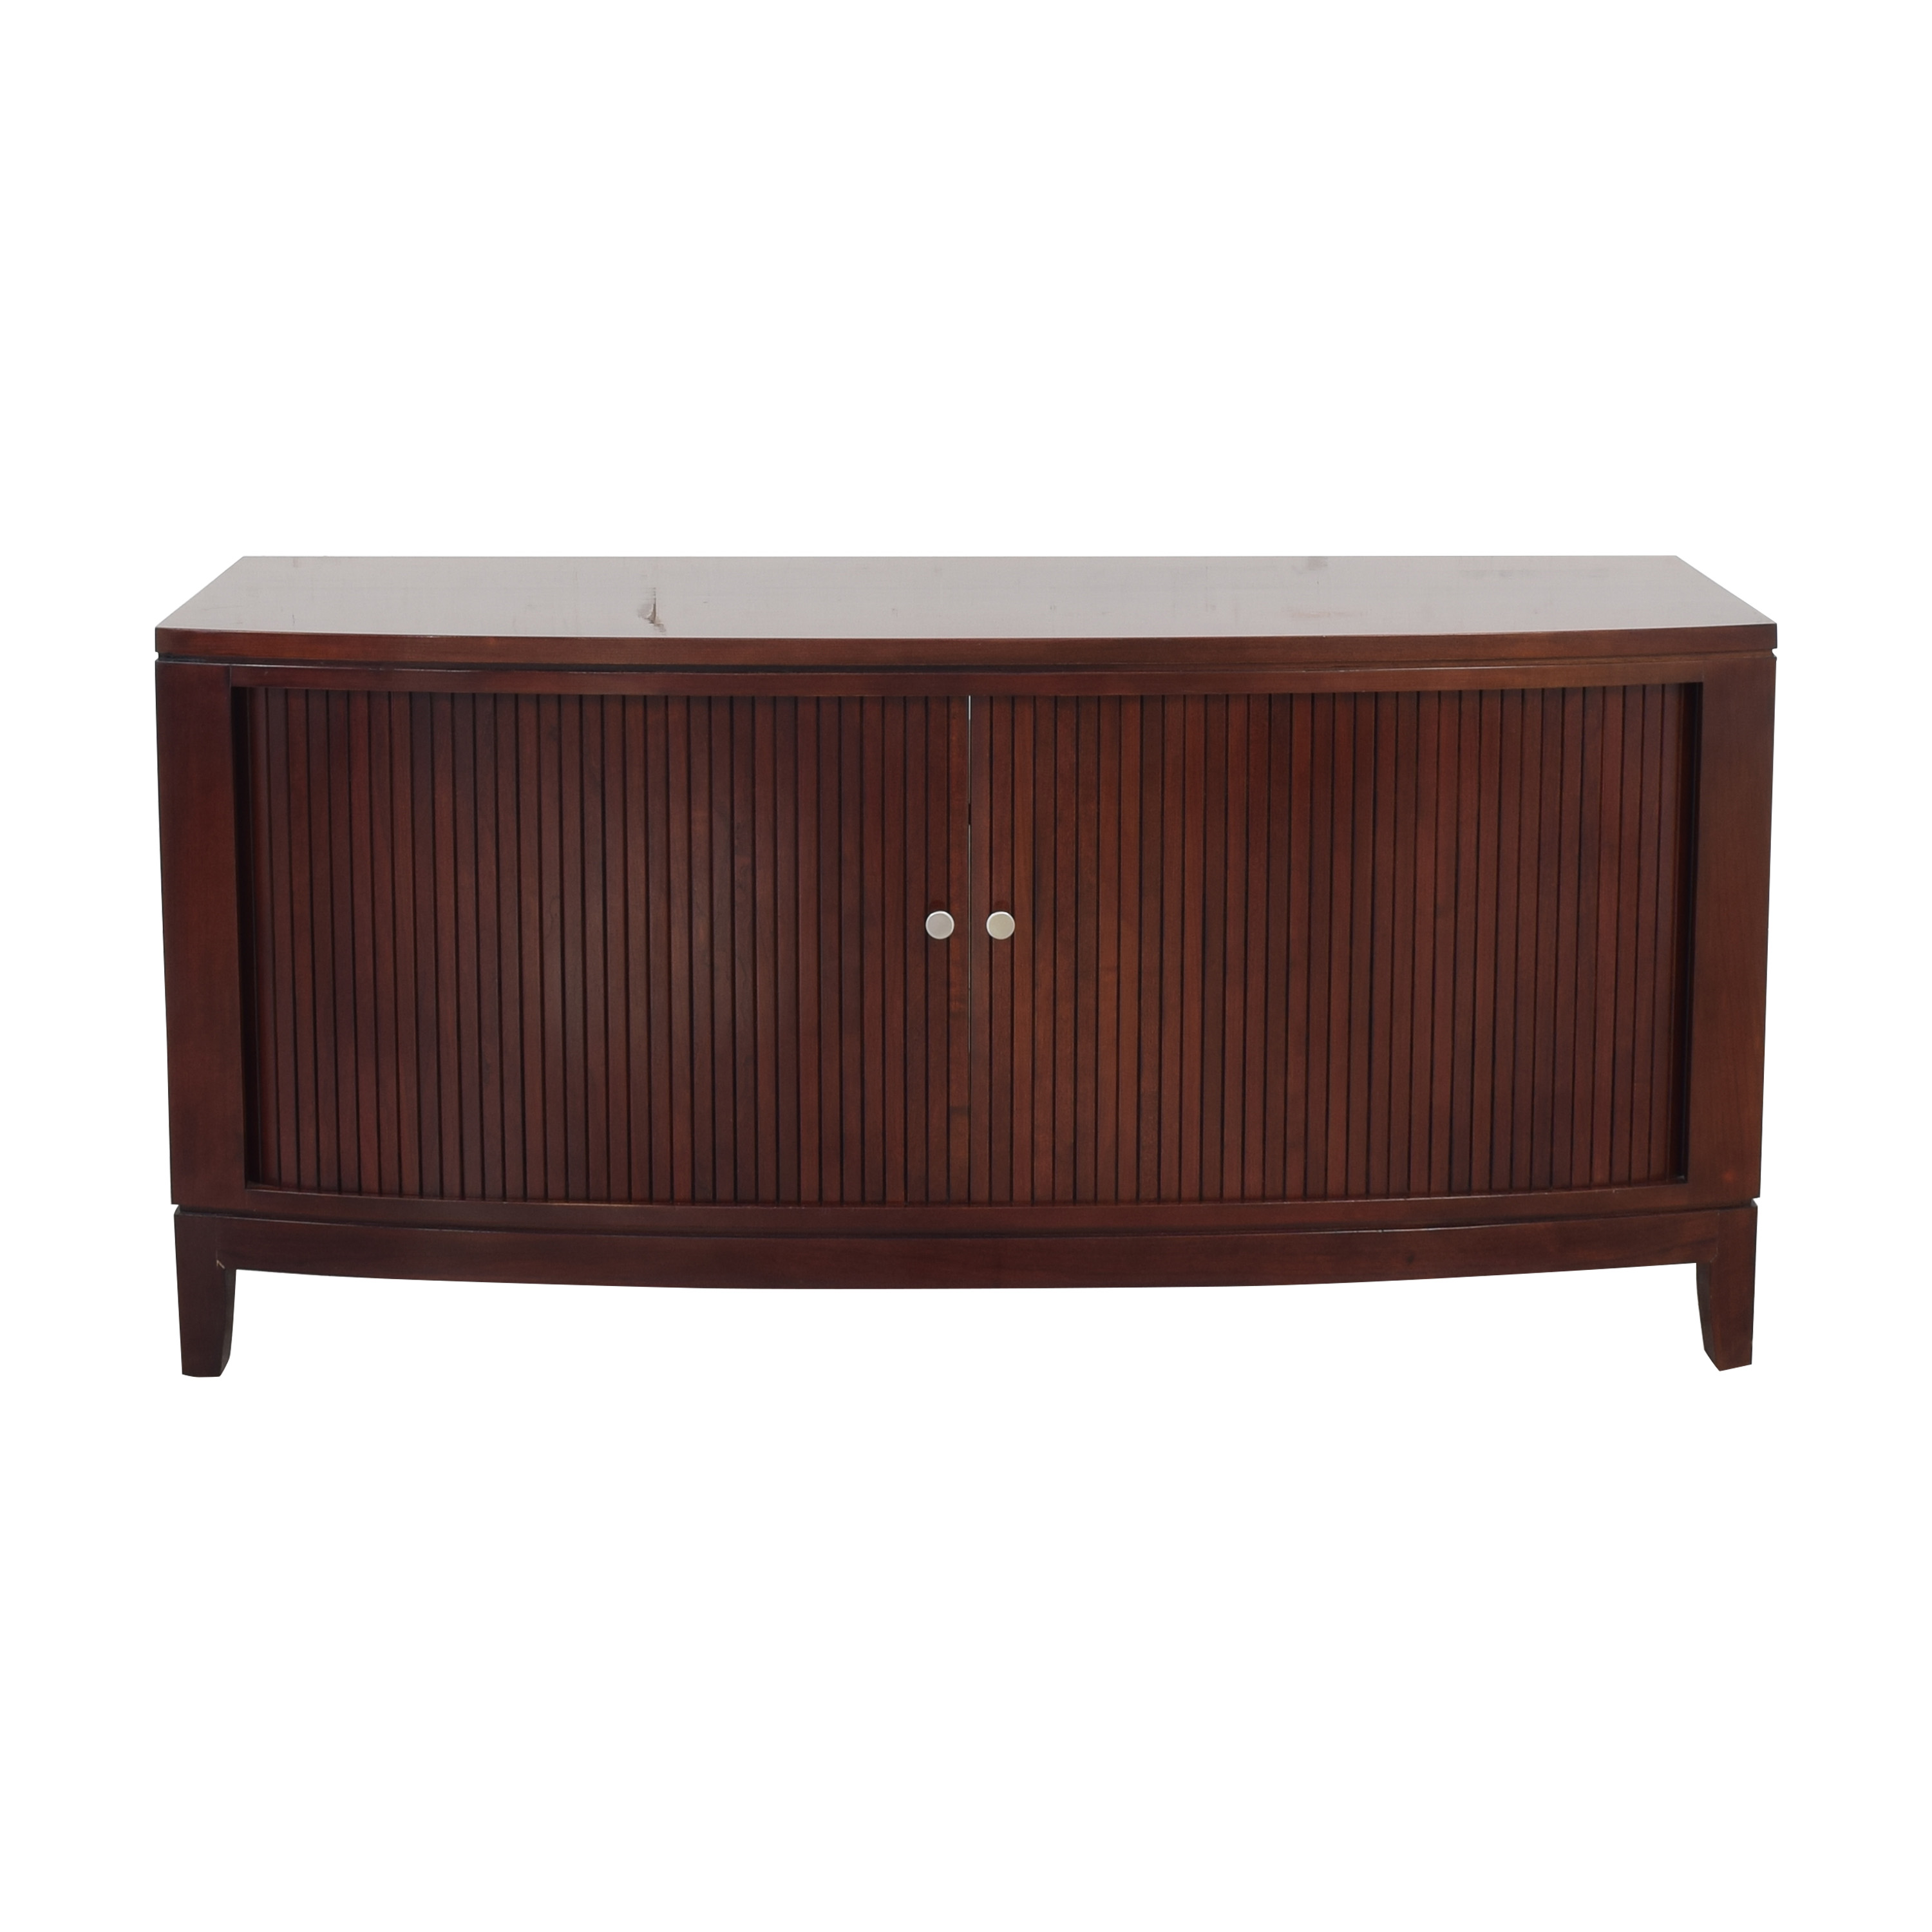 Stickley Furniture Stickley Furniture Entertainment Console on sale